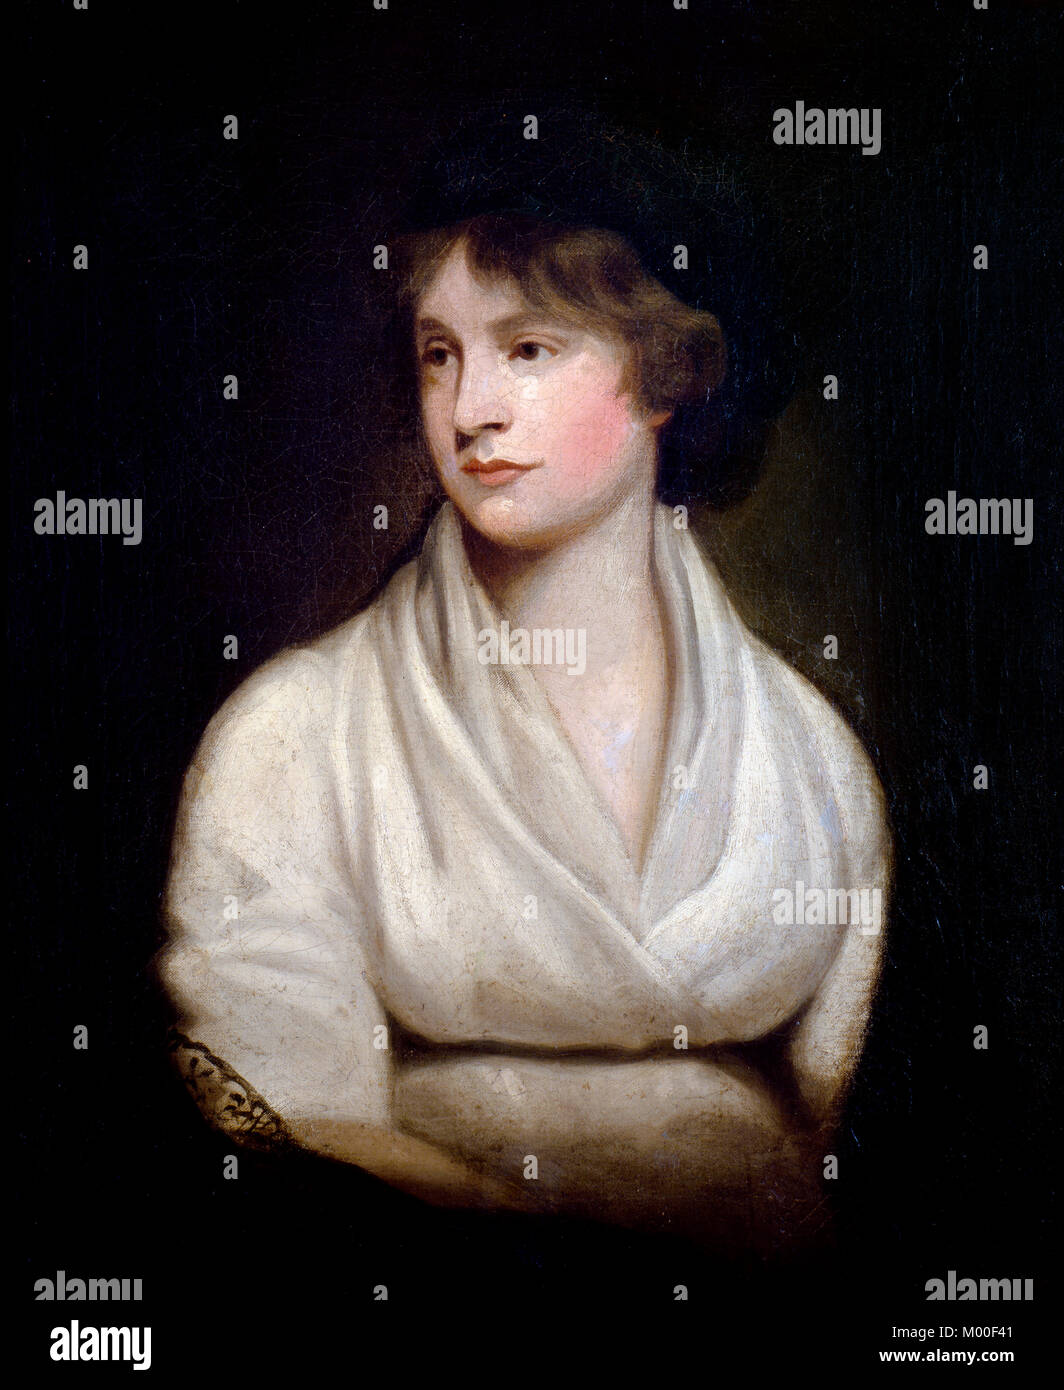 Mary Wollstonecraft (1759-1797), portrait of the writer, activist and mother of Mary Shelley. Copy by John Keenan Stock Photo